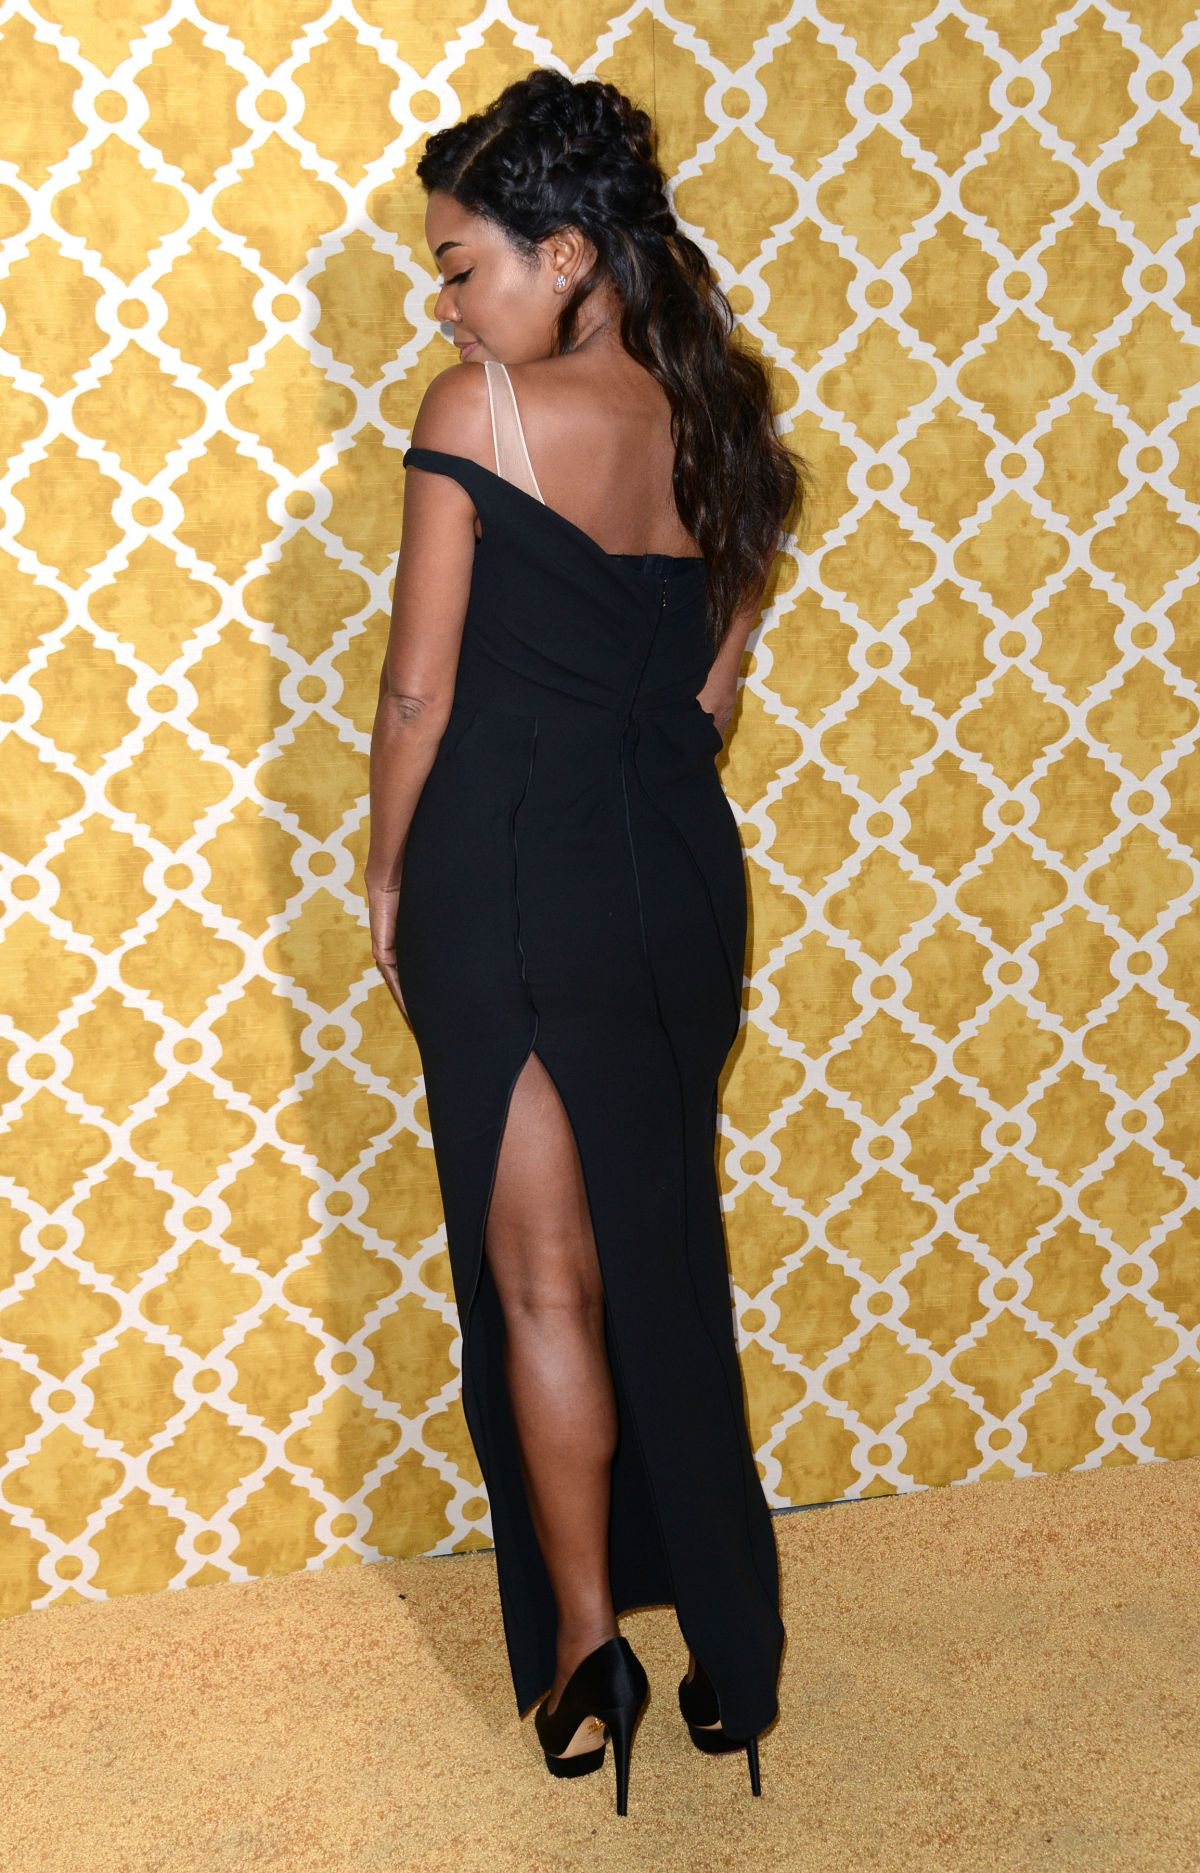 gabrielle-union-at-confirmation-premiere-at-paramount-studios-in-la_4